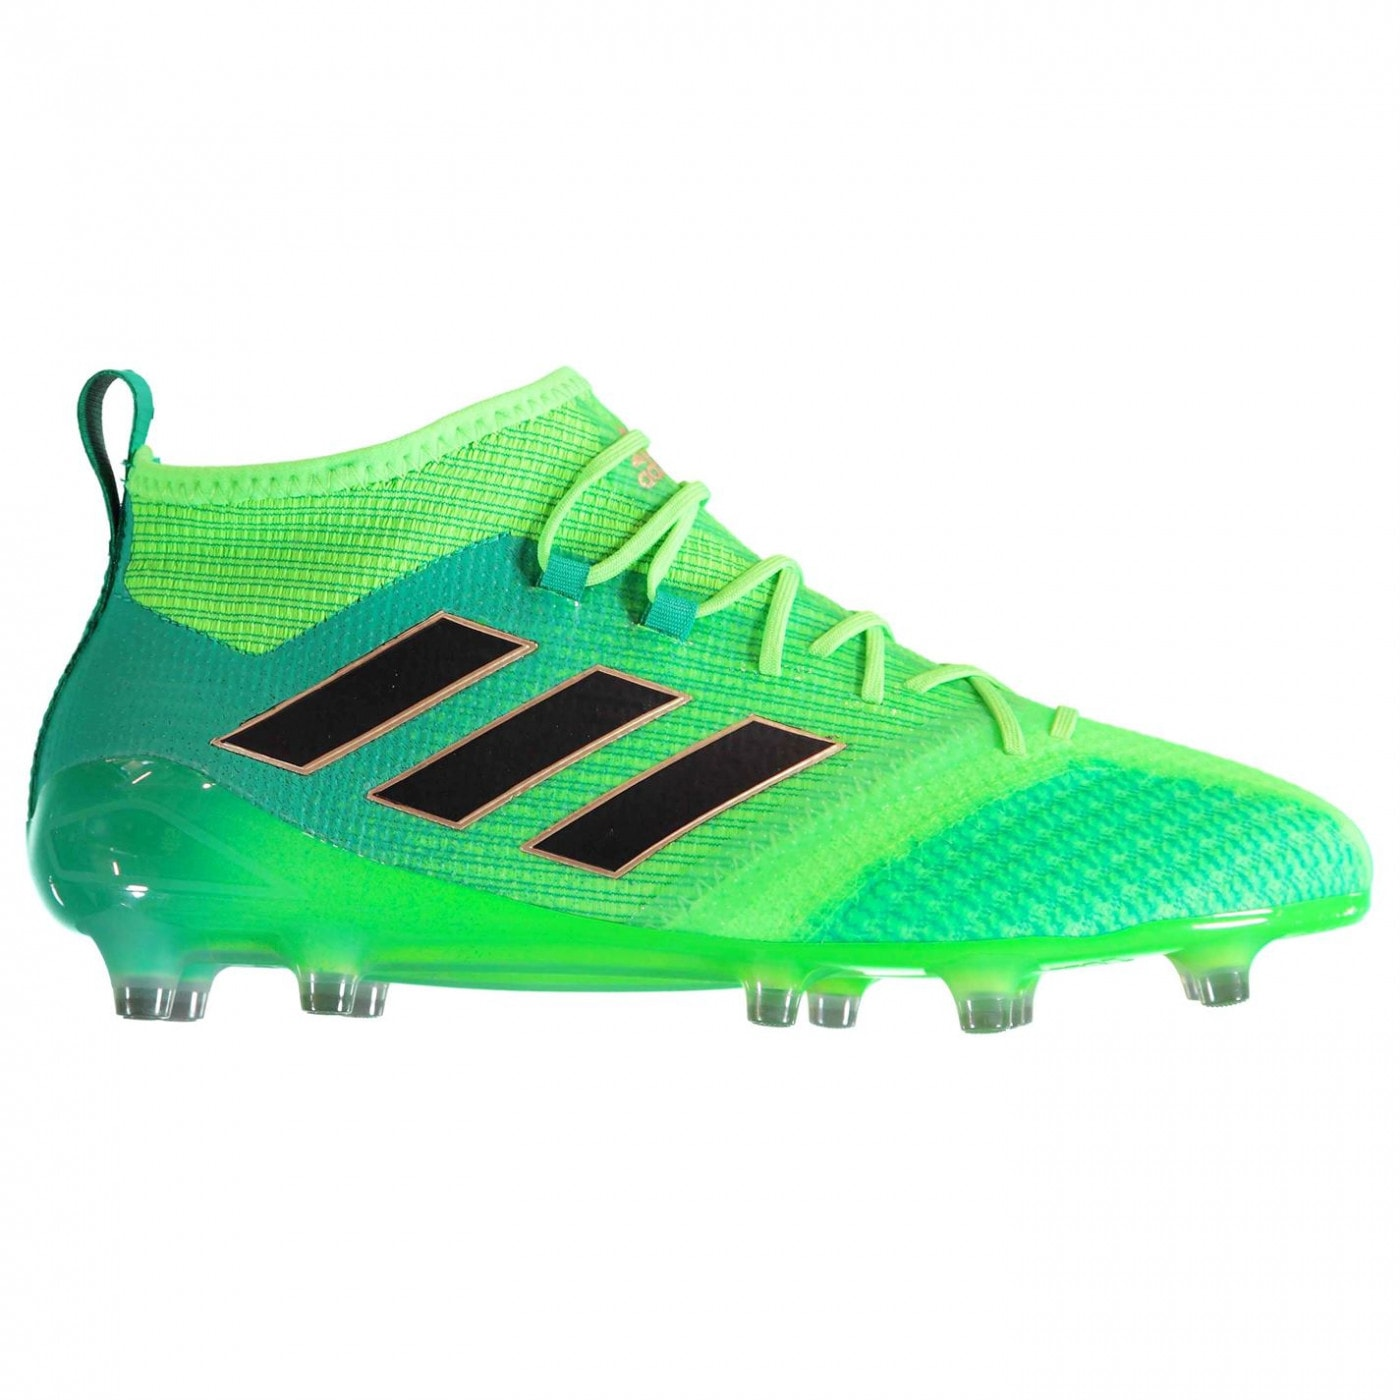 Adidas Ace 17.1 Primeknit FG Football Boots Mens